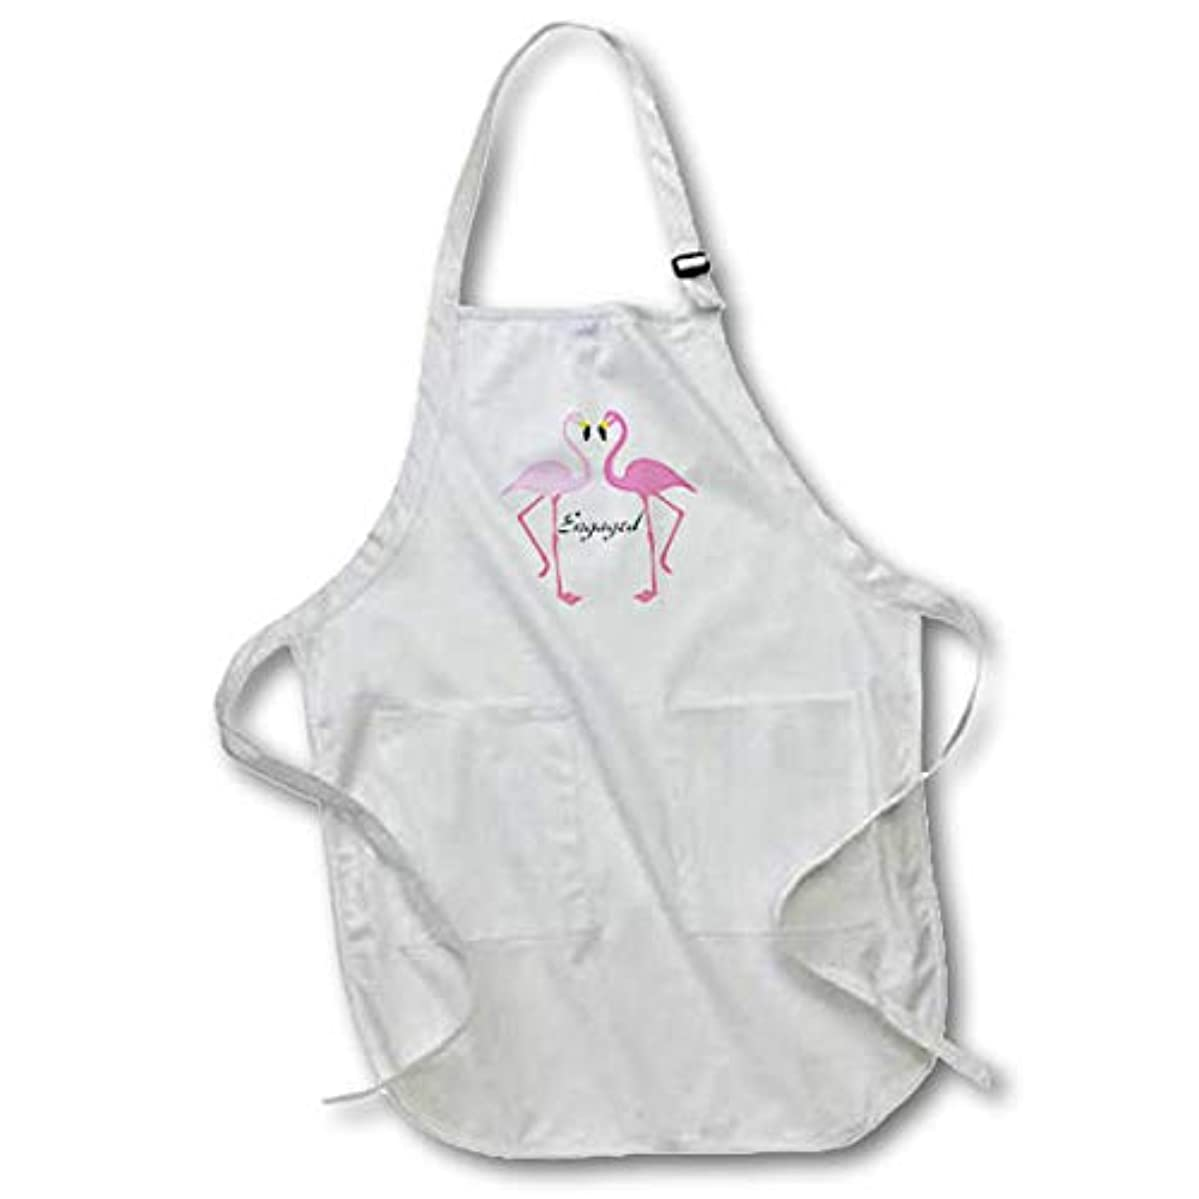 3dRose Lens Art by Florene - Wedding and Engagements - Image of Two Pink Flamingos Announce were Engaged - Full Length Apron with Pockets 22w x 30l (apr_311362_1)